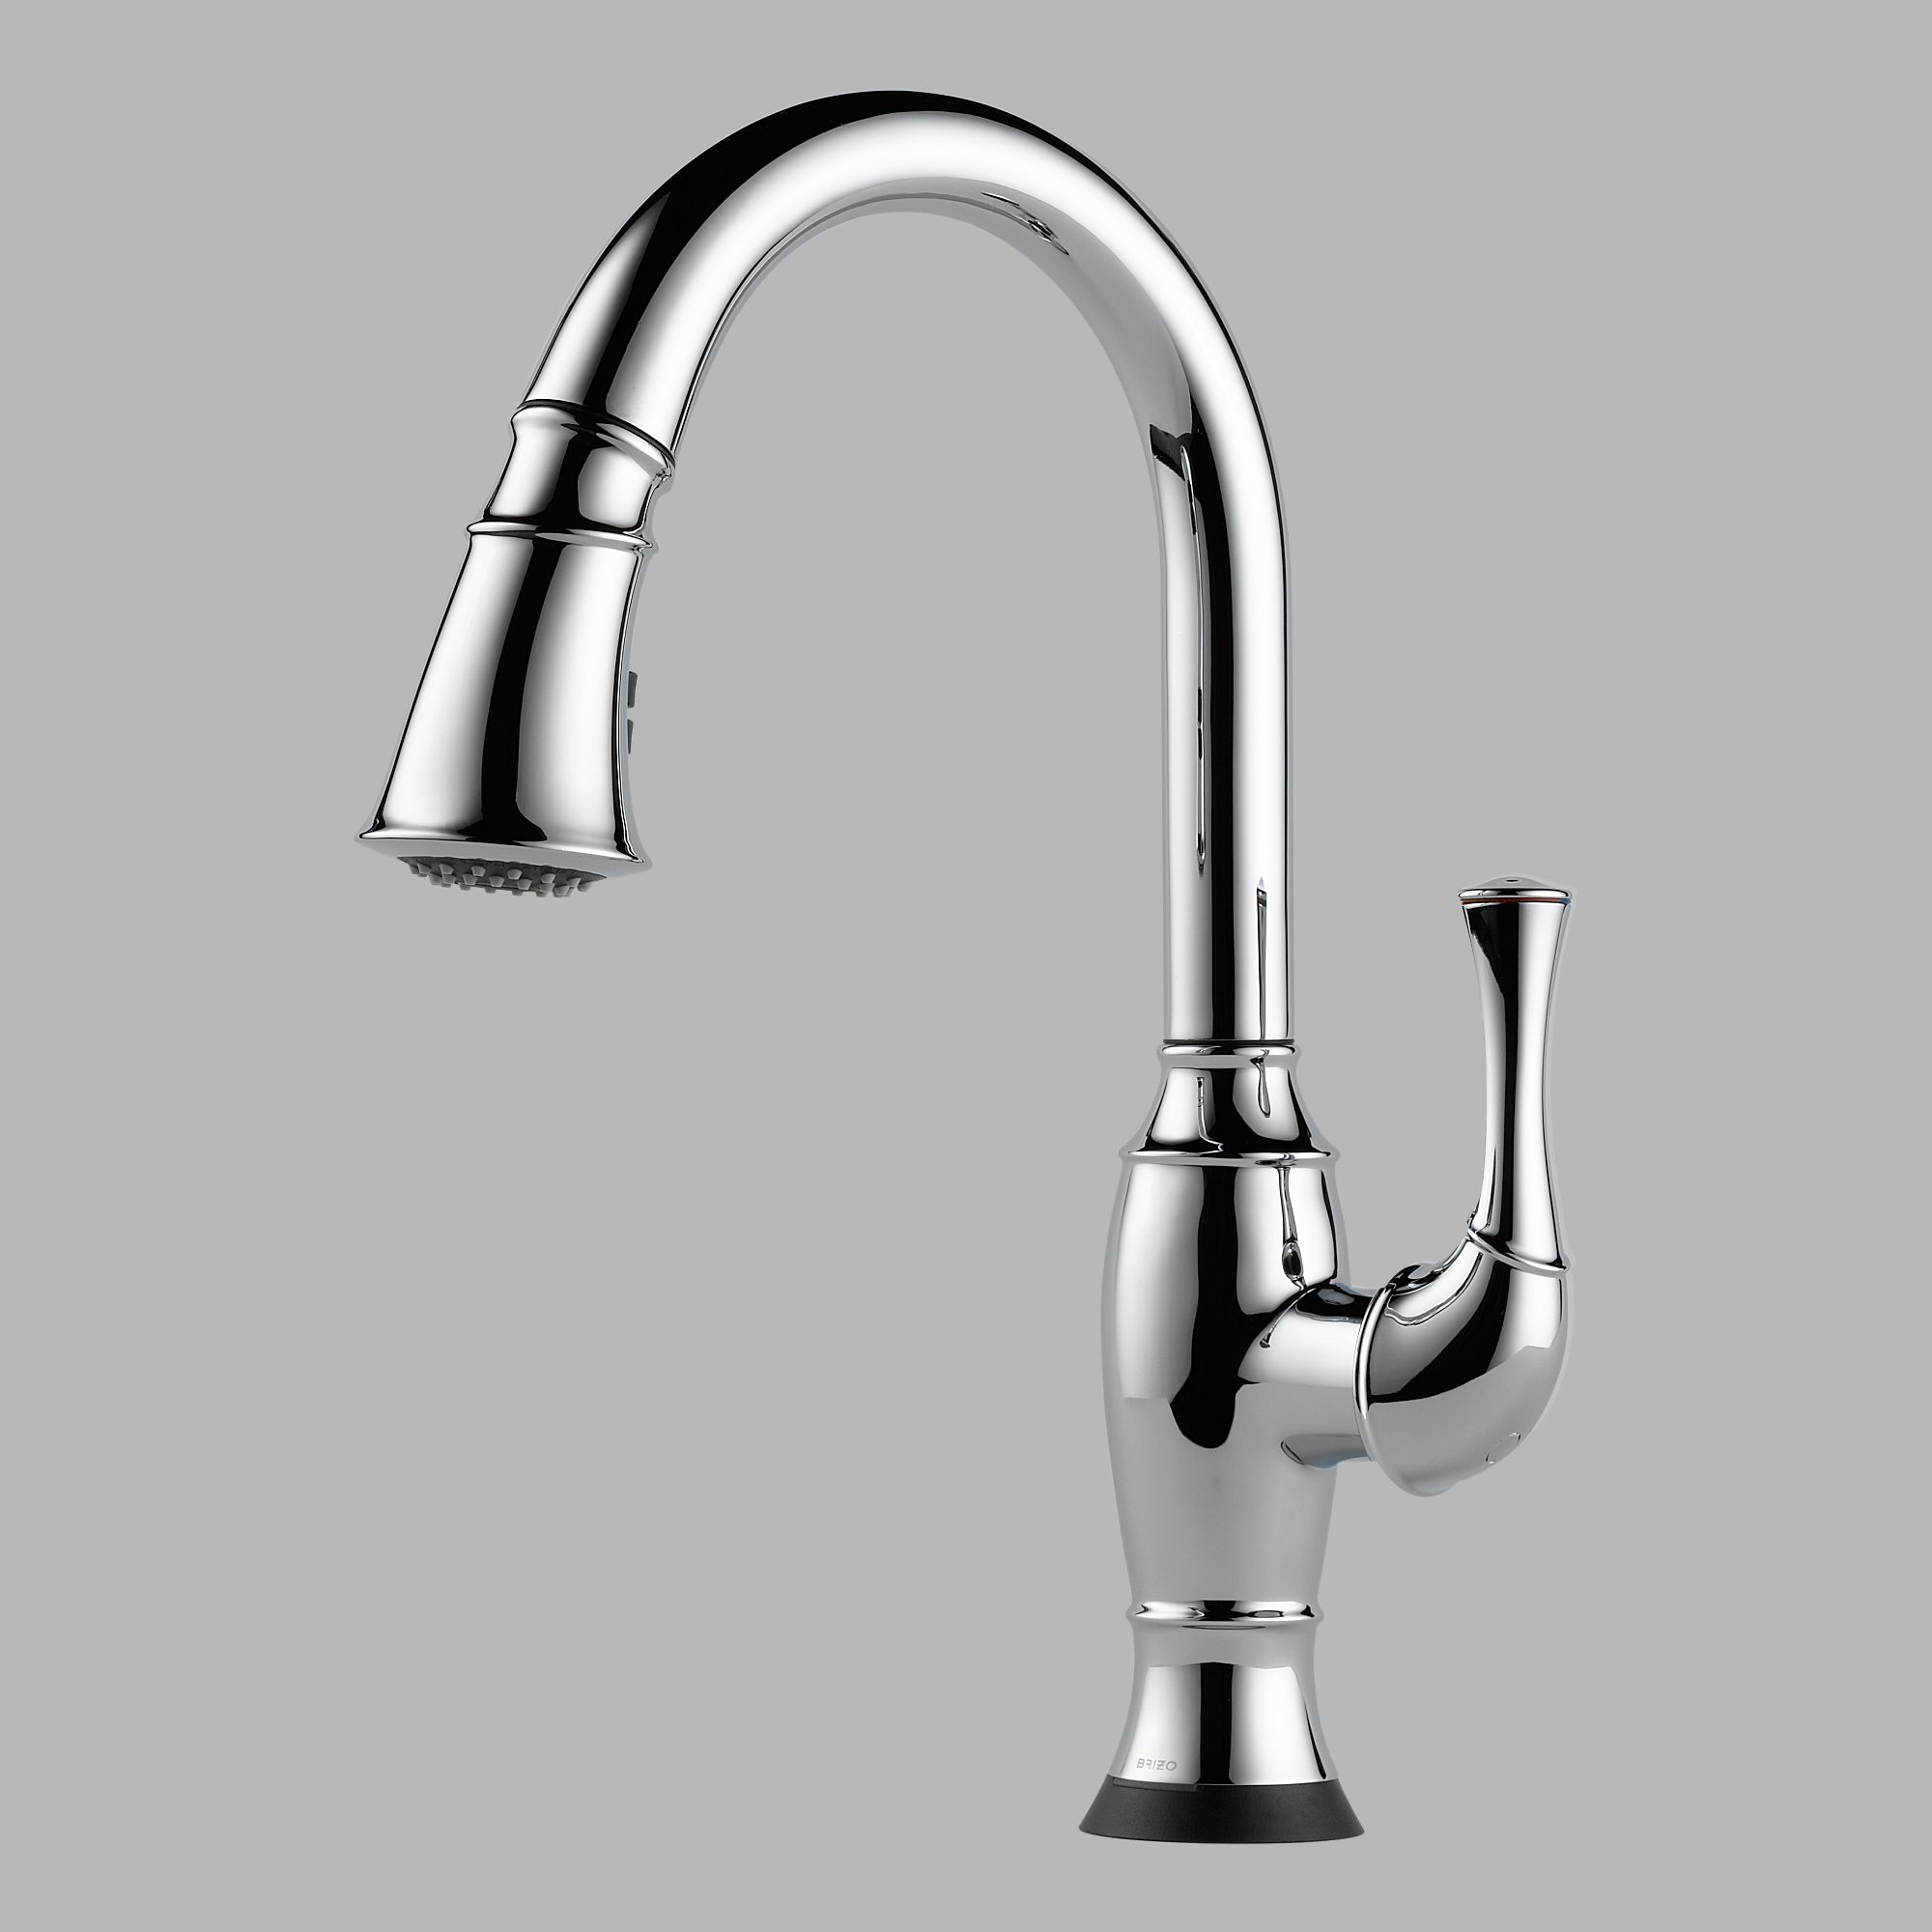 Delicieux Brizo · 64003 Brizo Talo Single Handle Pull Down Kitchen Faucet With Sma